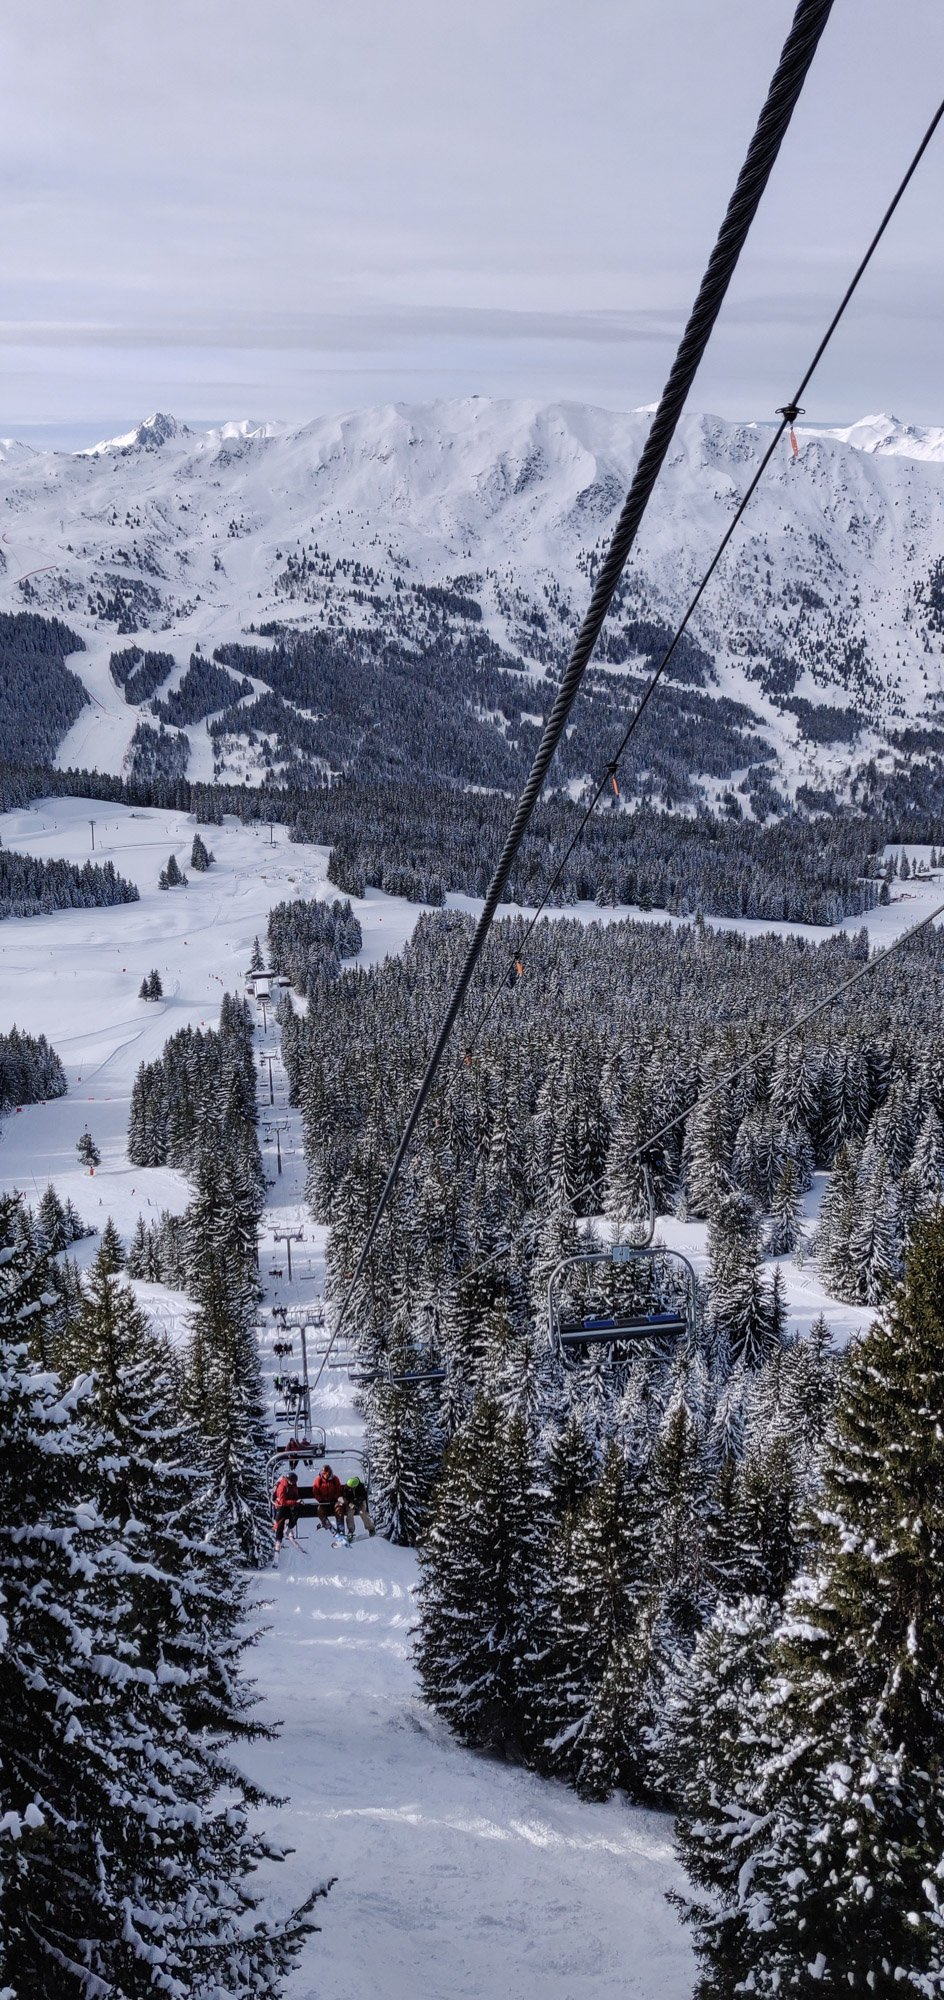 Chairlift 'Loze' through the snowy trees, La Tania